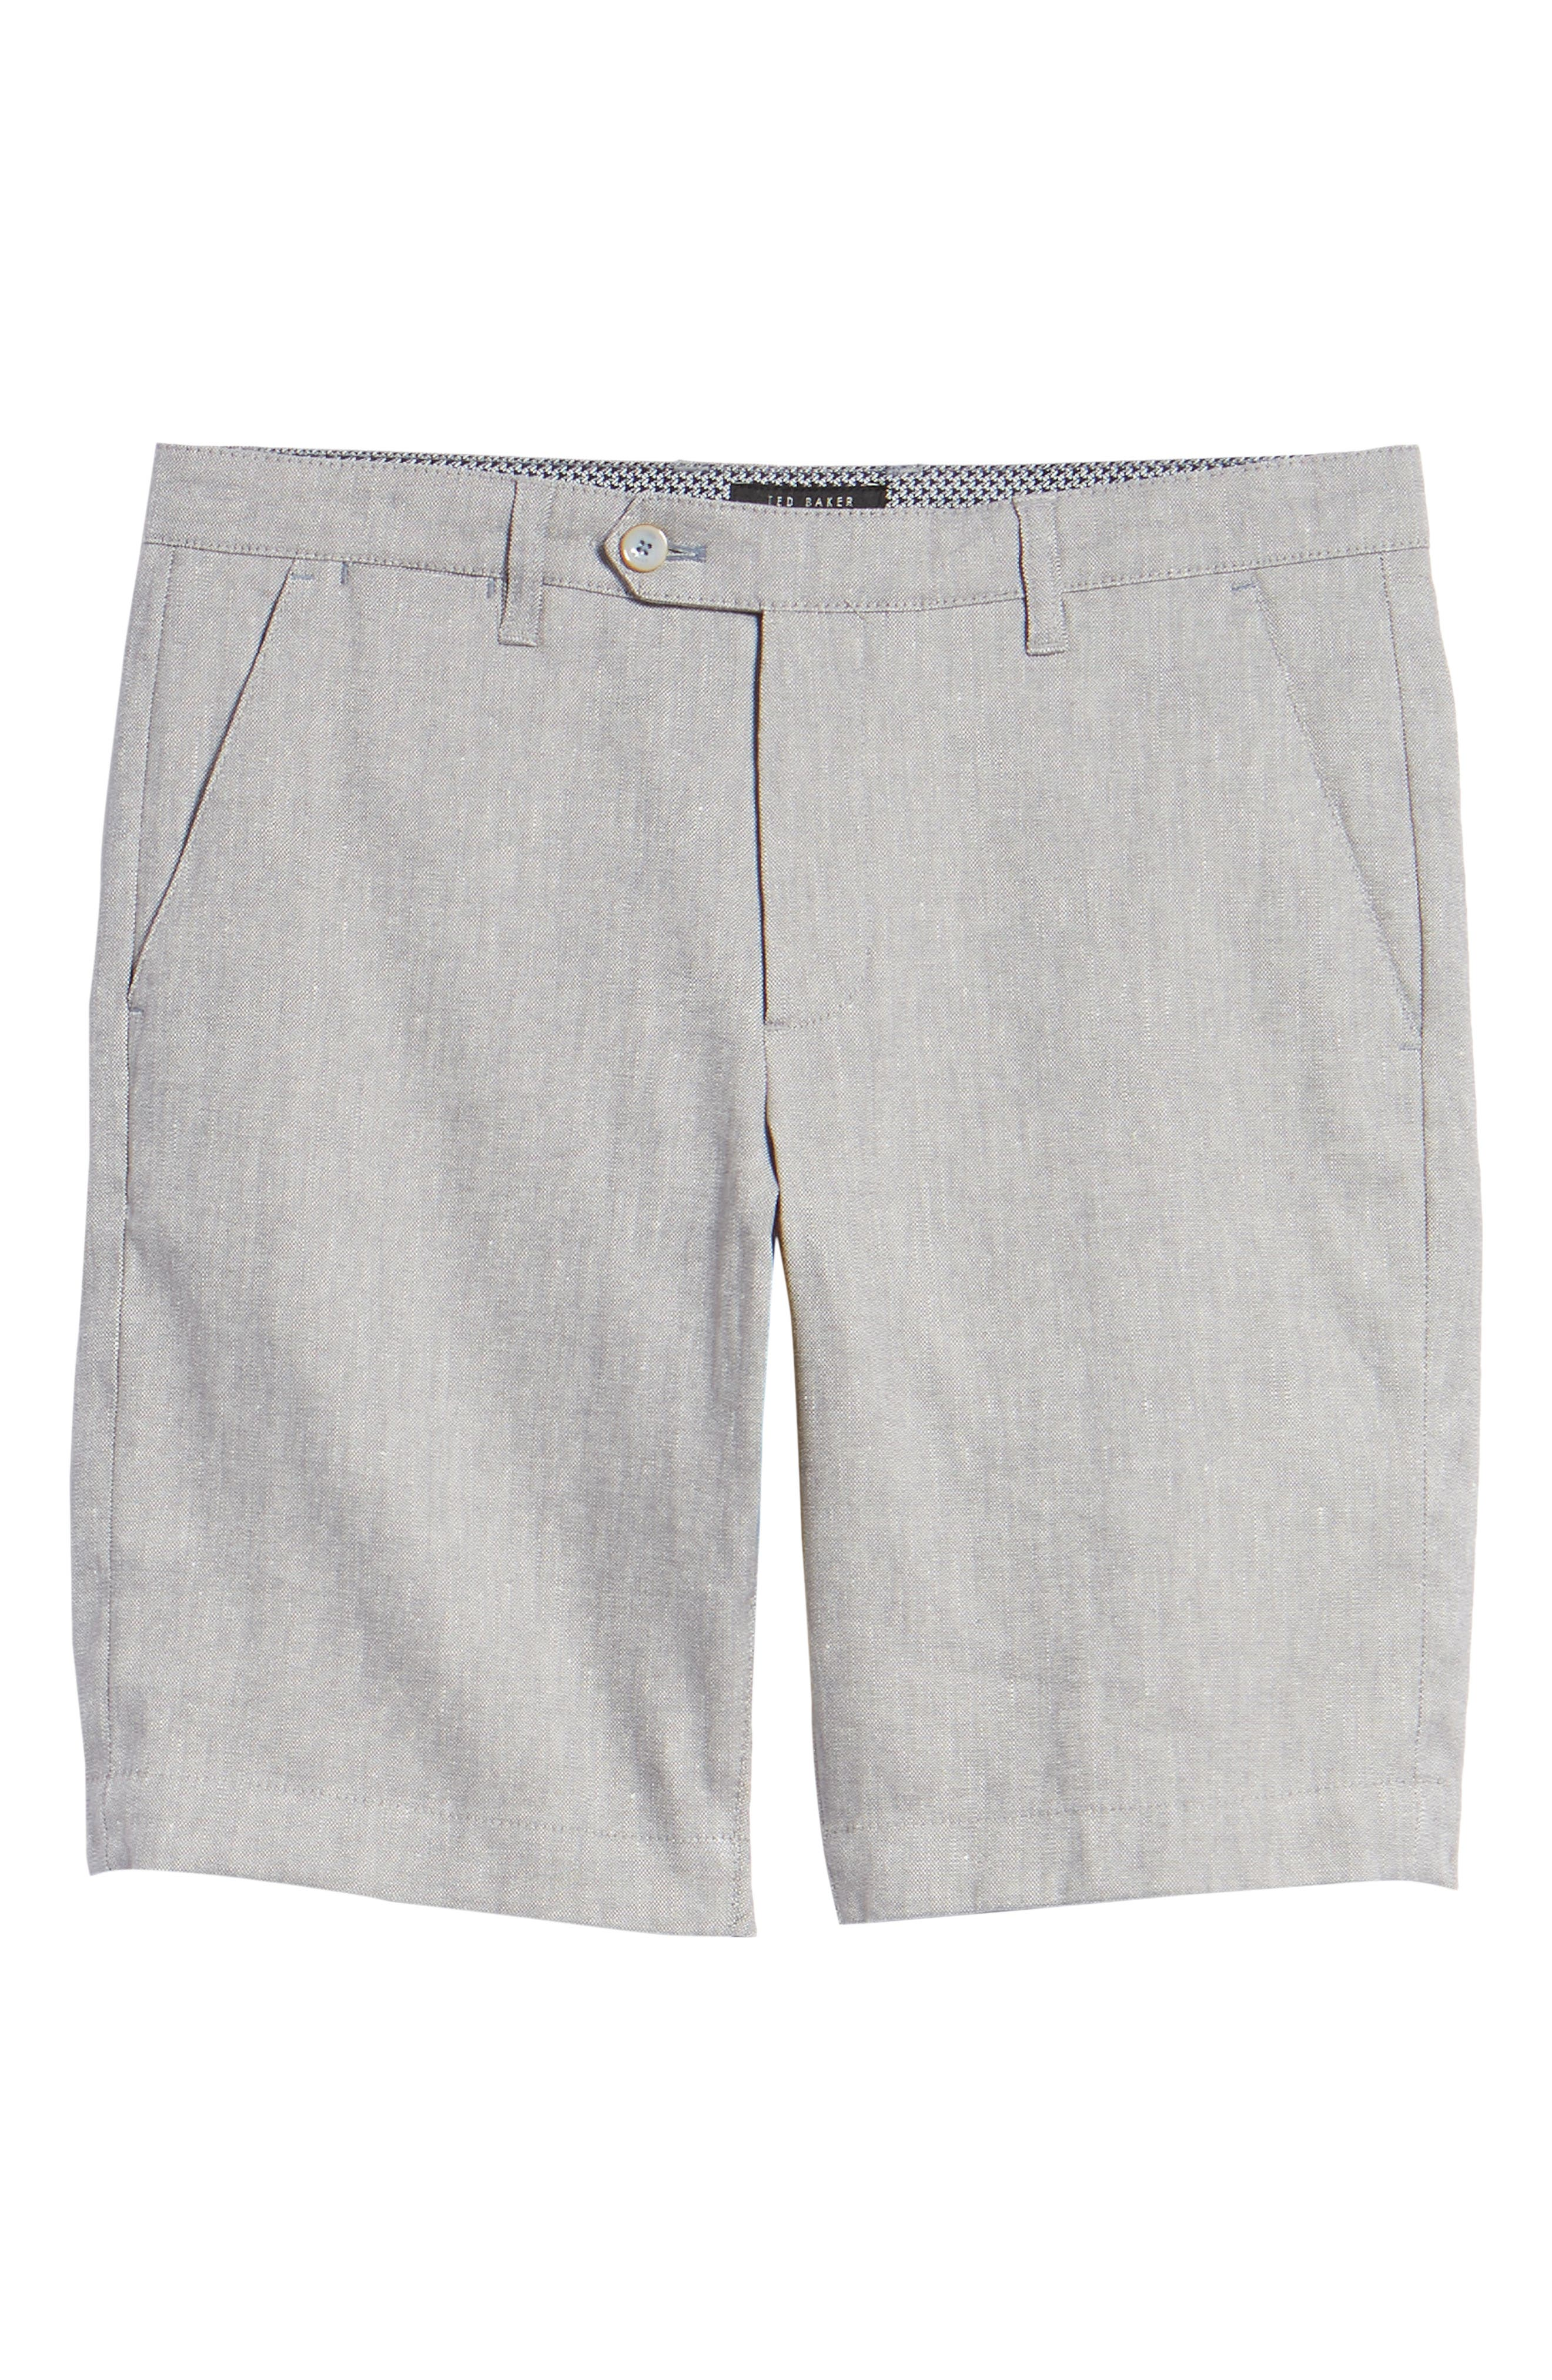 Newshow Flat Front Stretch Cotton Blend Shorts,                             Alternate thumbnail 6, color,                             050